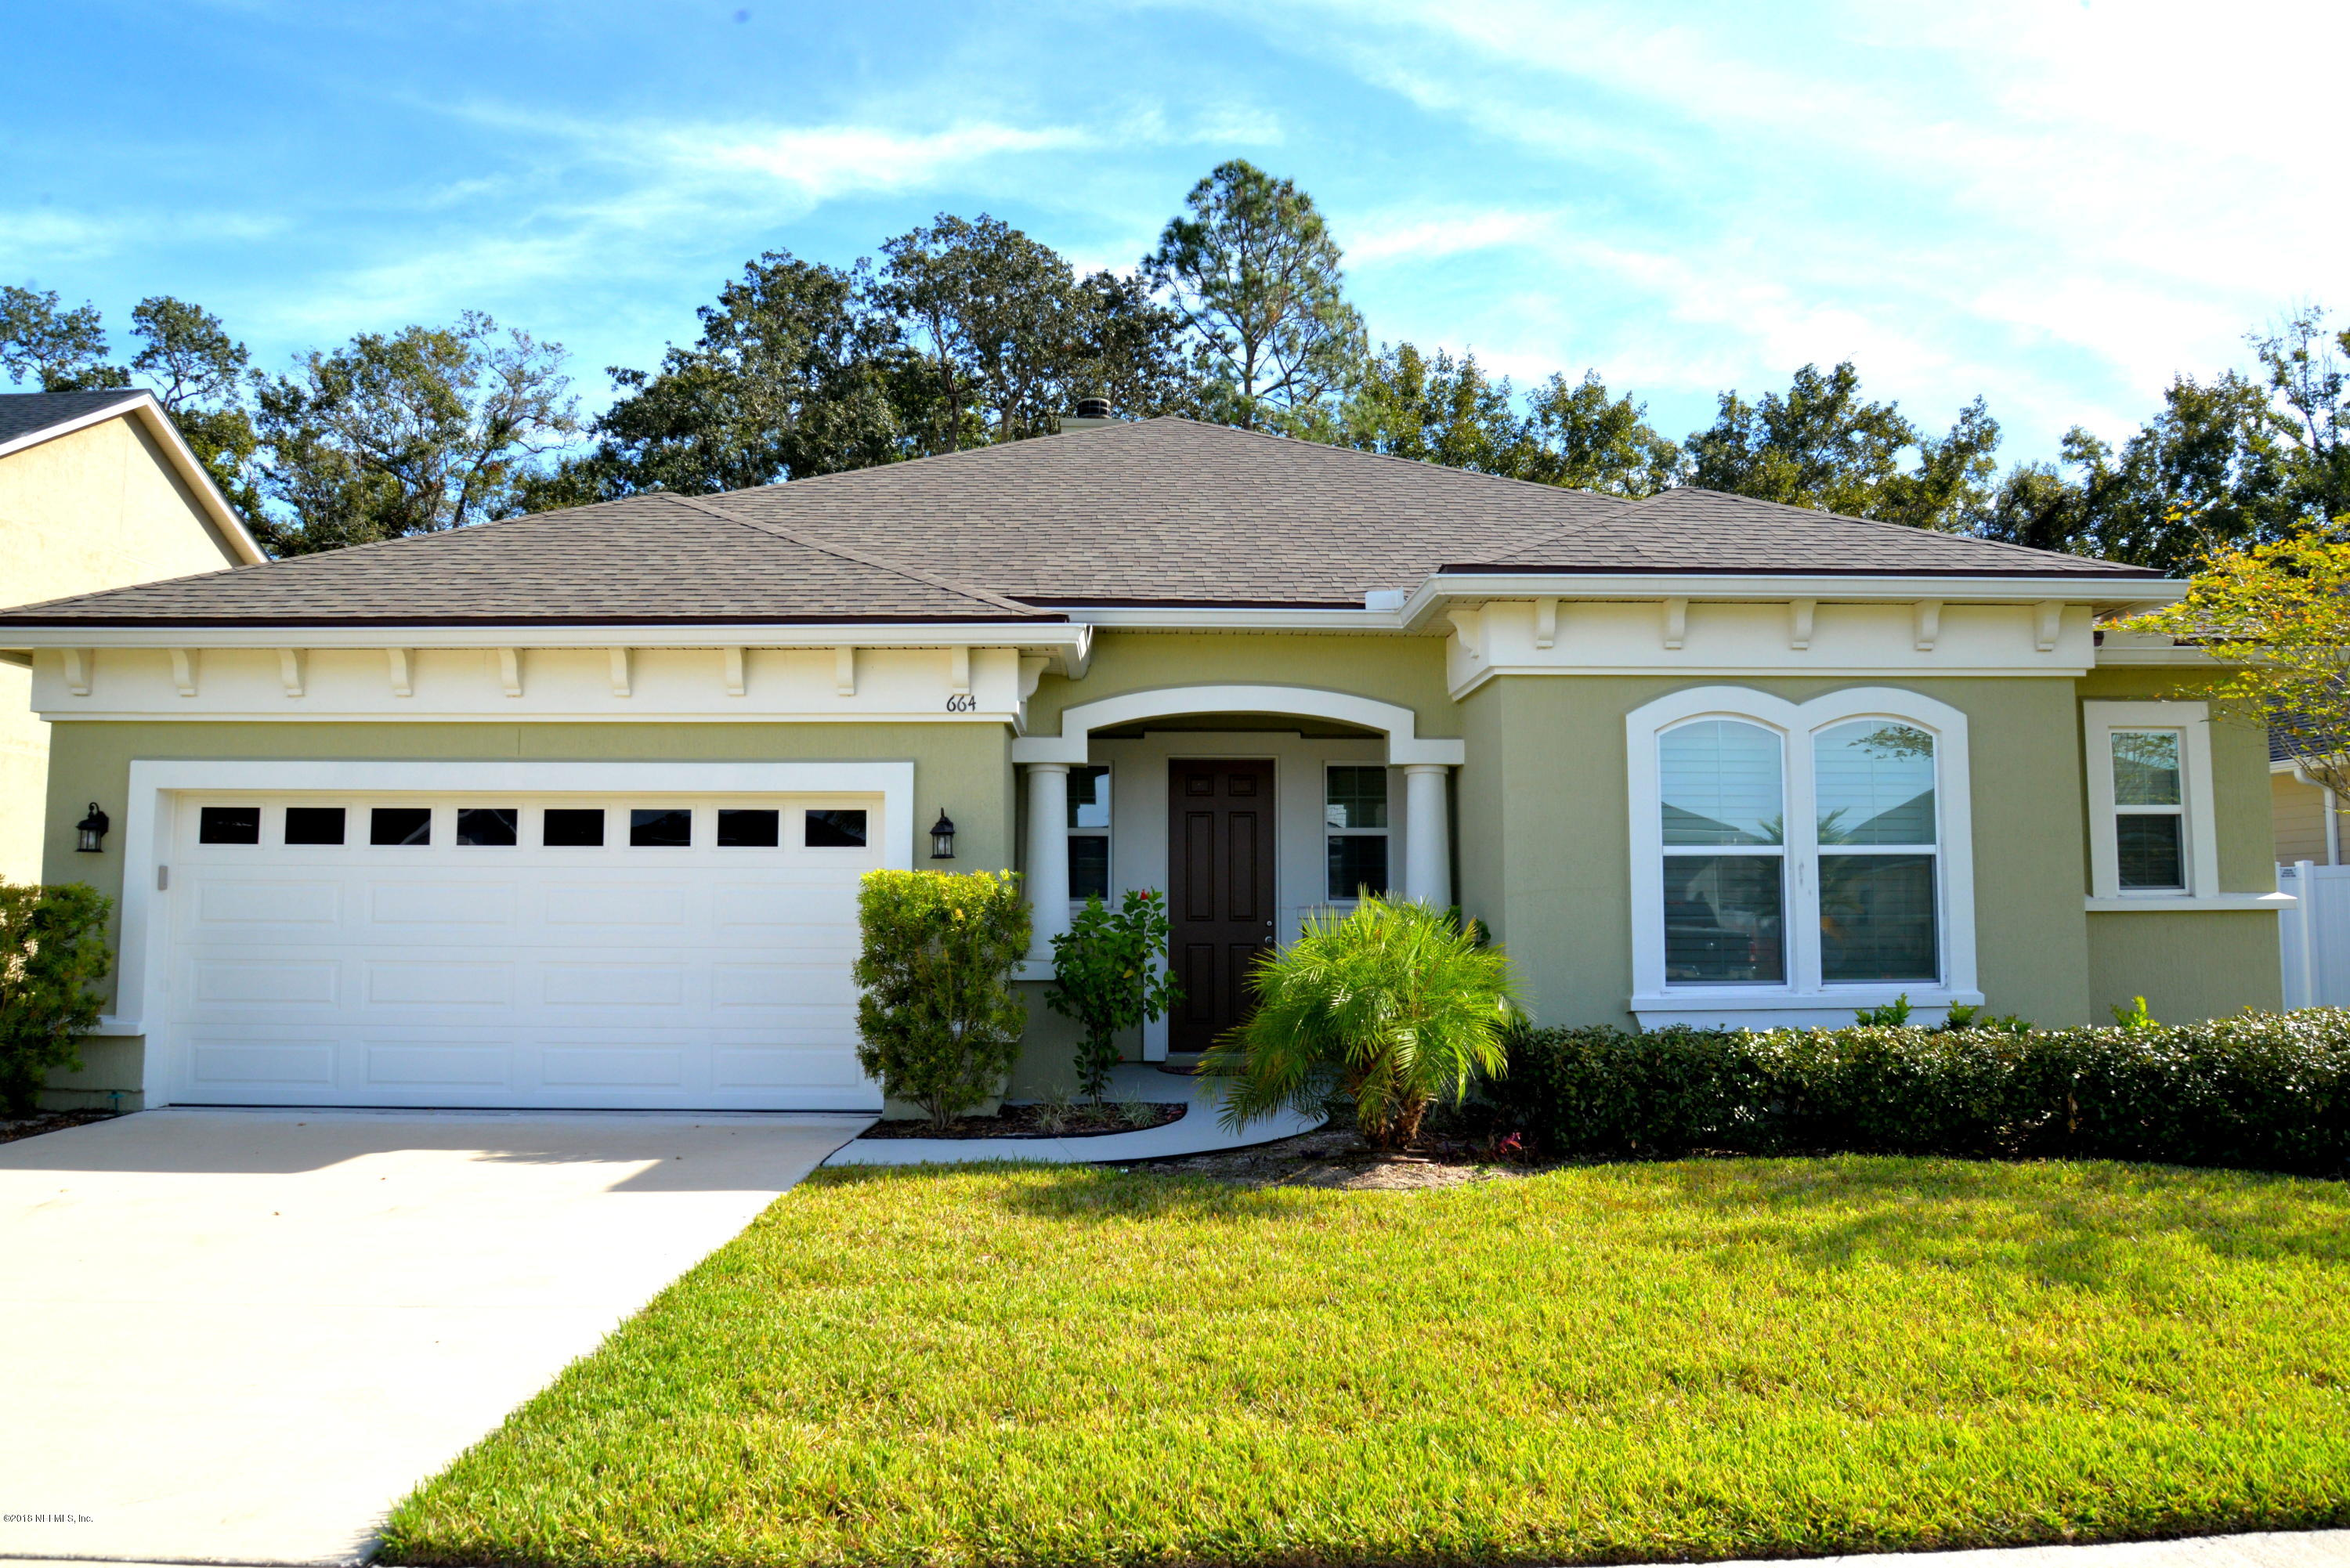 664 MONTIANO, ST AUGUSTINE, FLORIDA 32084, 3 Bedrooms Bedrooms, ,2 BathroomsBathrooms,Residential - single family,For sale,MONTIANO,965139